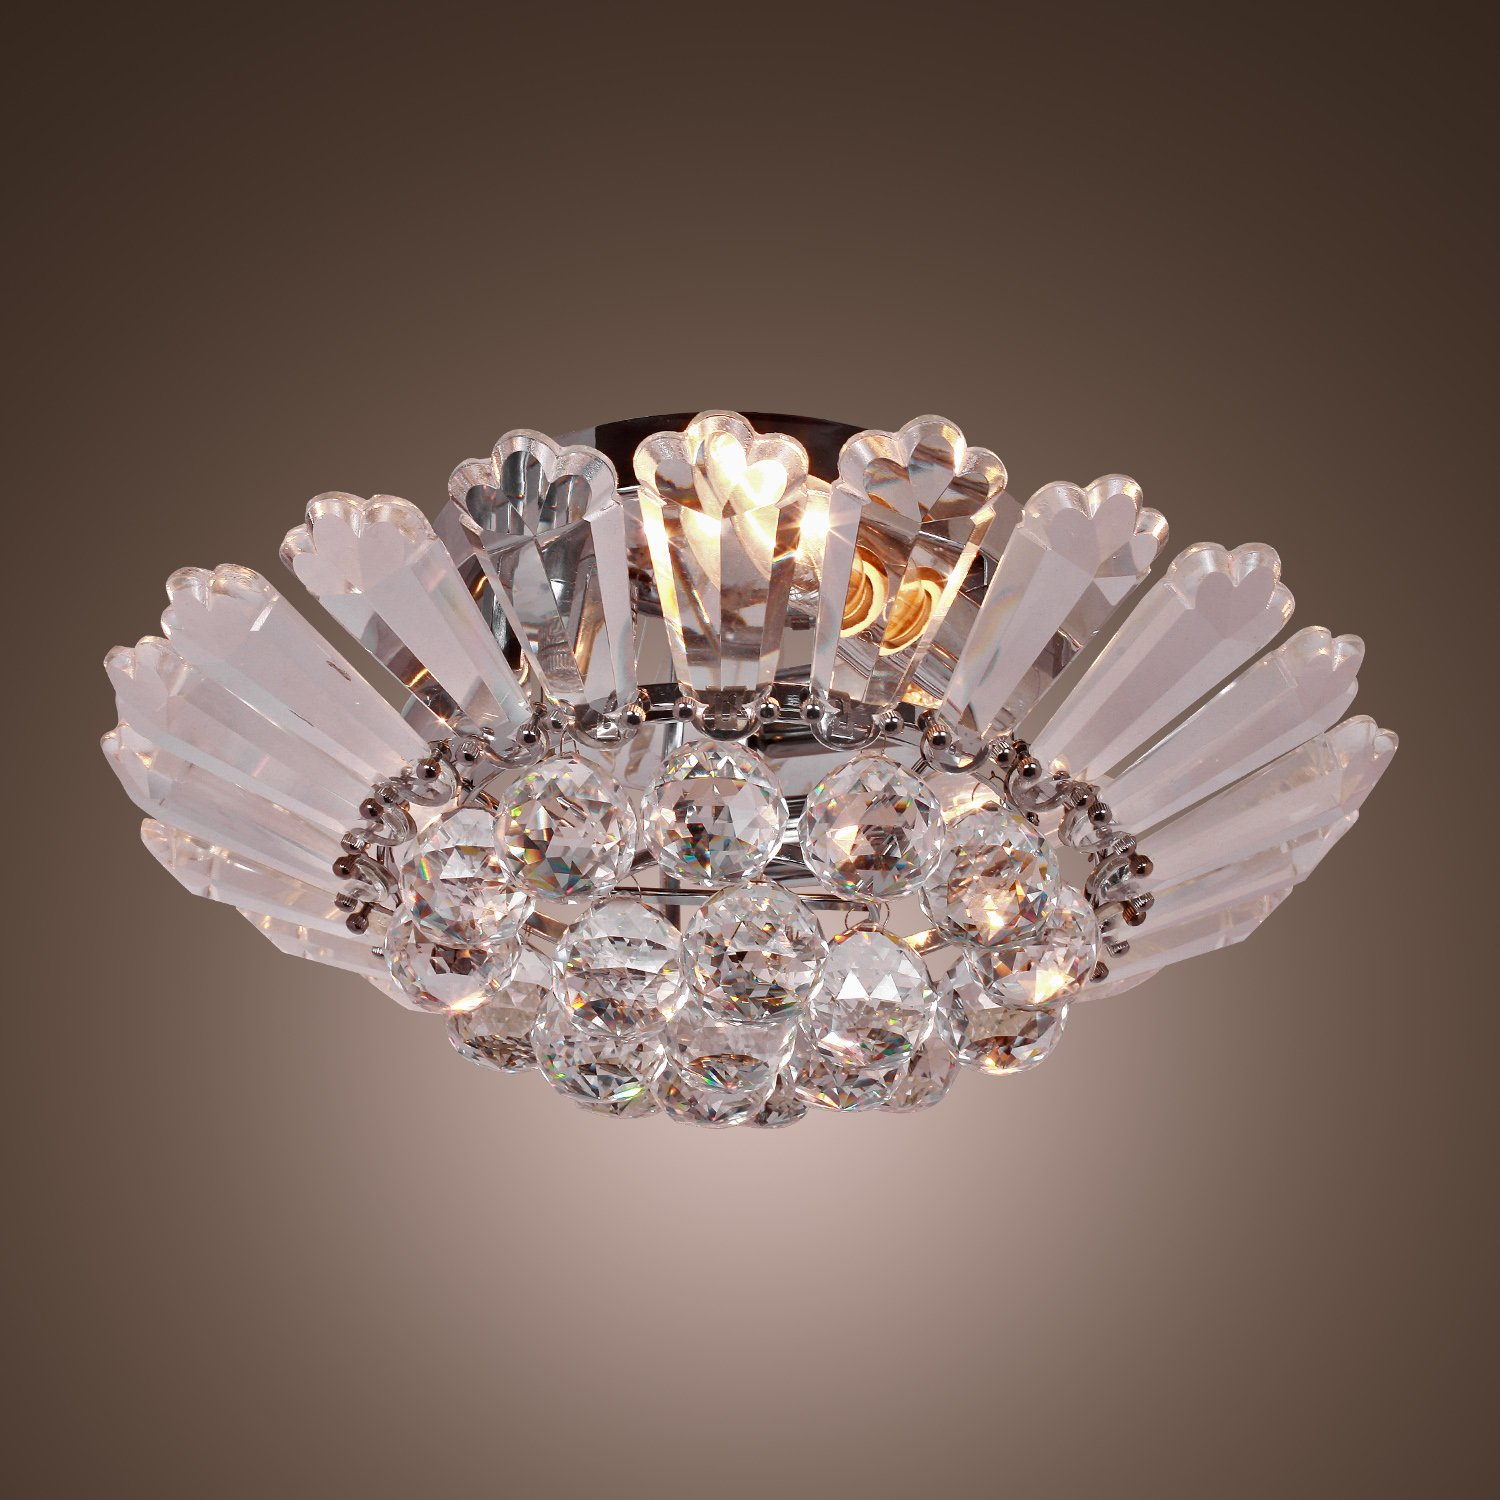 lightinthebox modern semi  flush mount in crystal feature home  - lightinthebox modern semi  flush mount in crystal feature home ceilinglight fixture chandeliers lighting for dining room bedroom living room close to